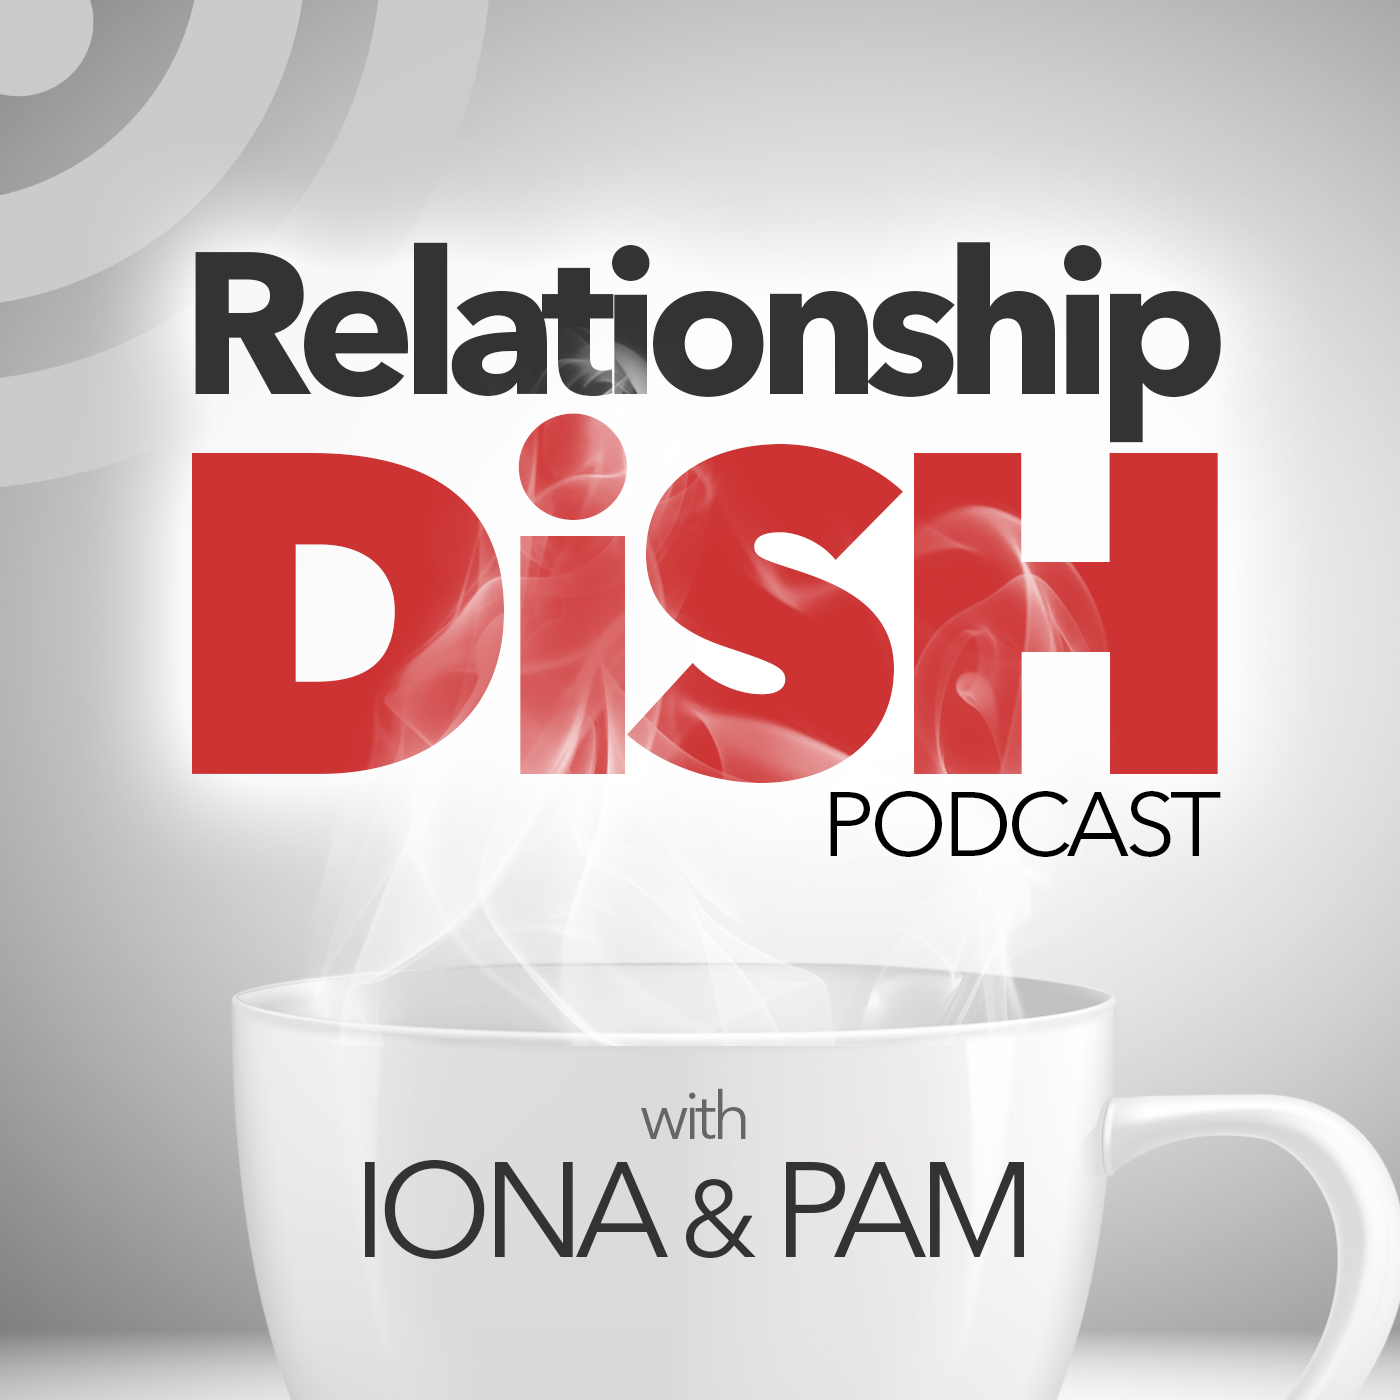 Relationship Dish - ep 91 / Low Level Forces That Compete With Intimacy